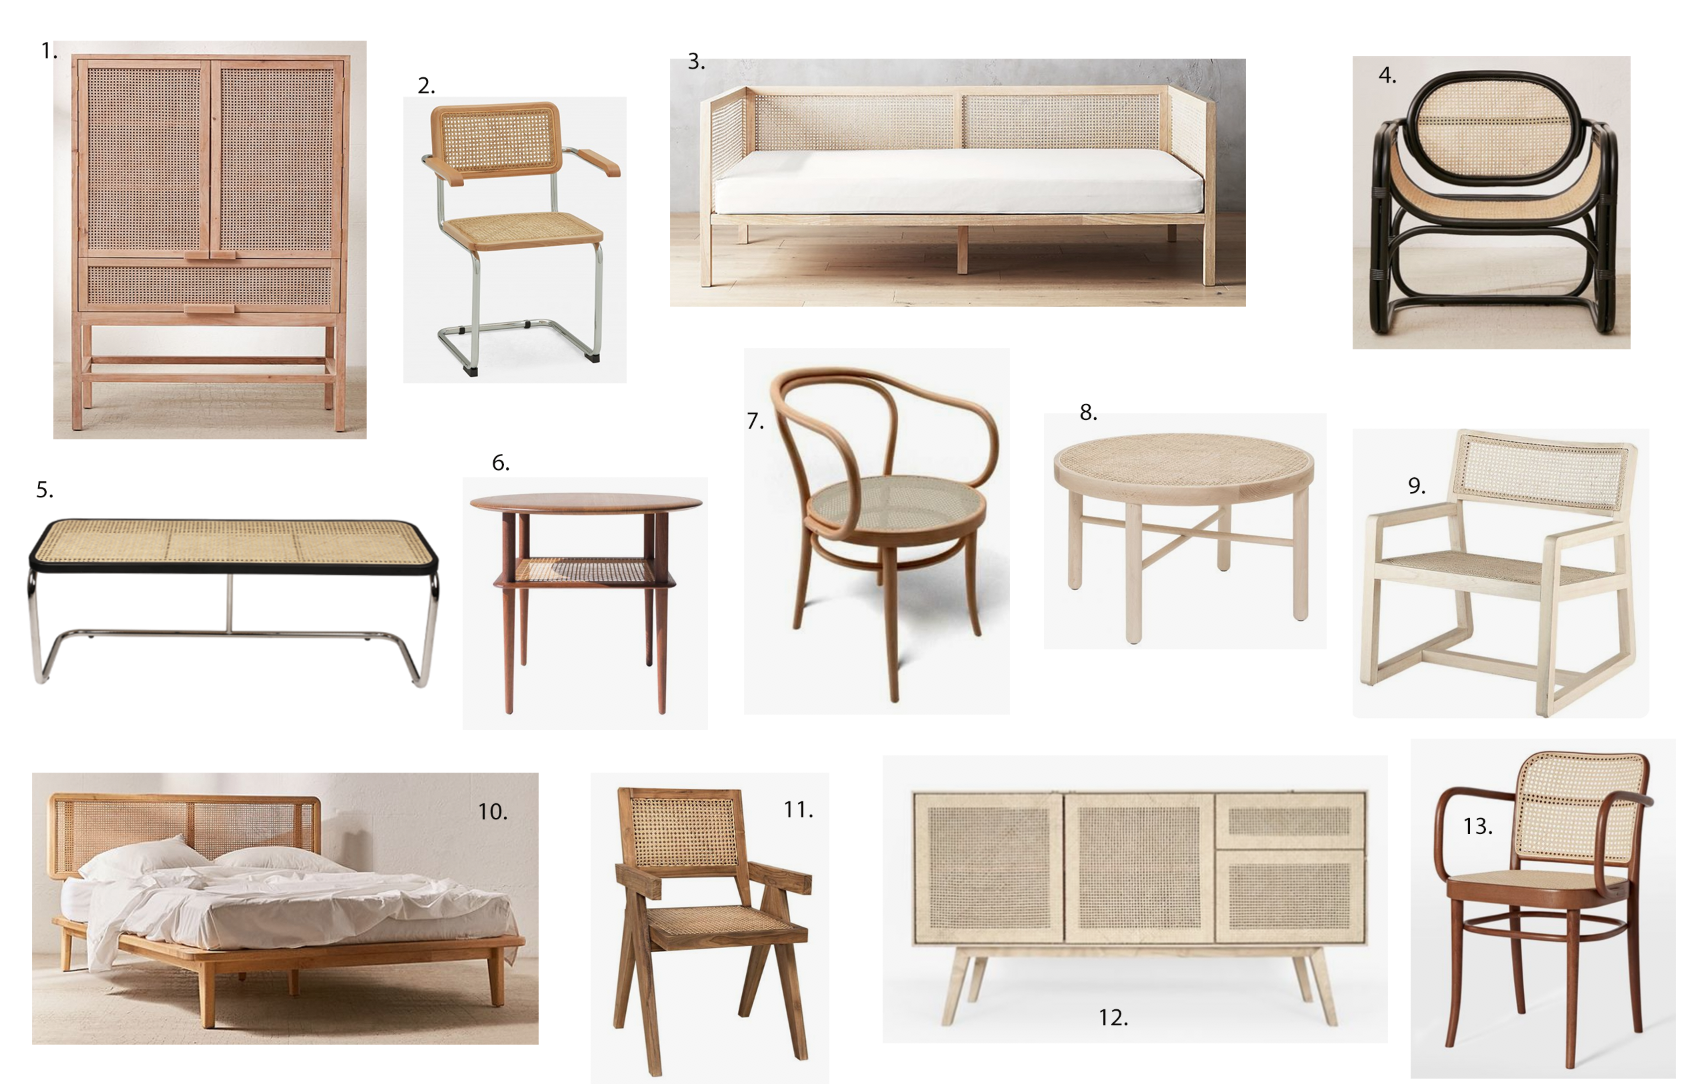 the Modhemian Cane Furniture Round Up